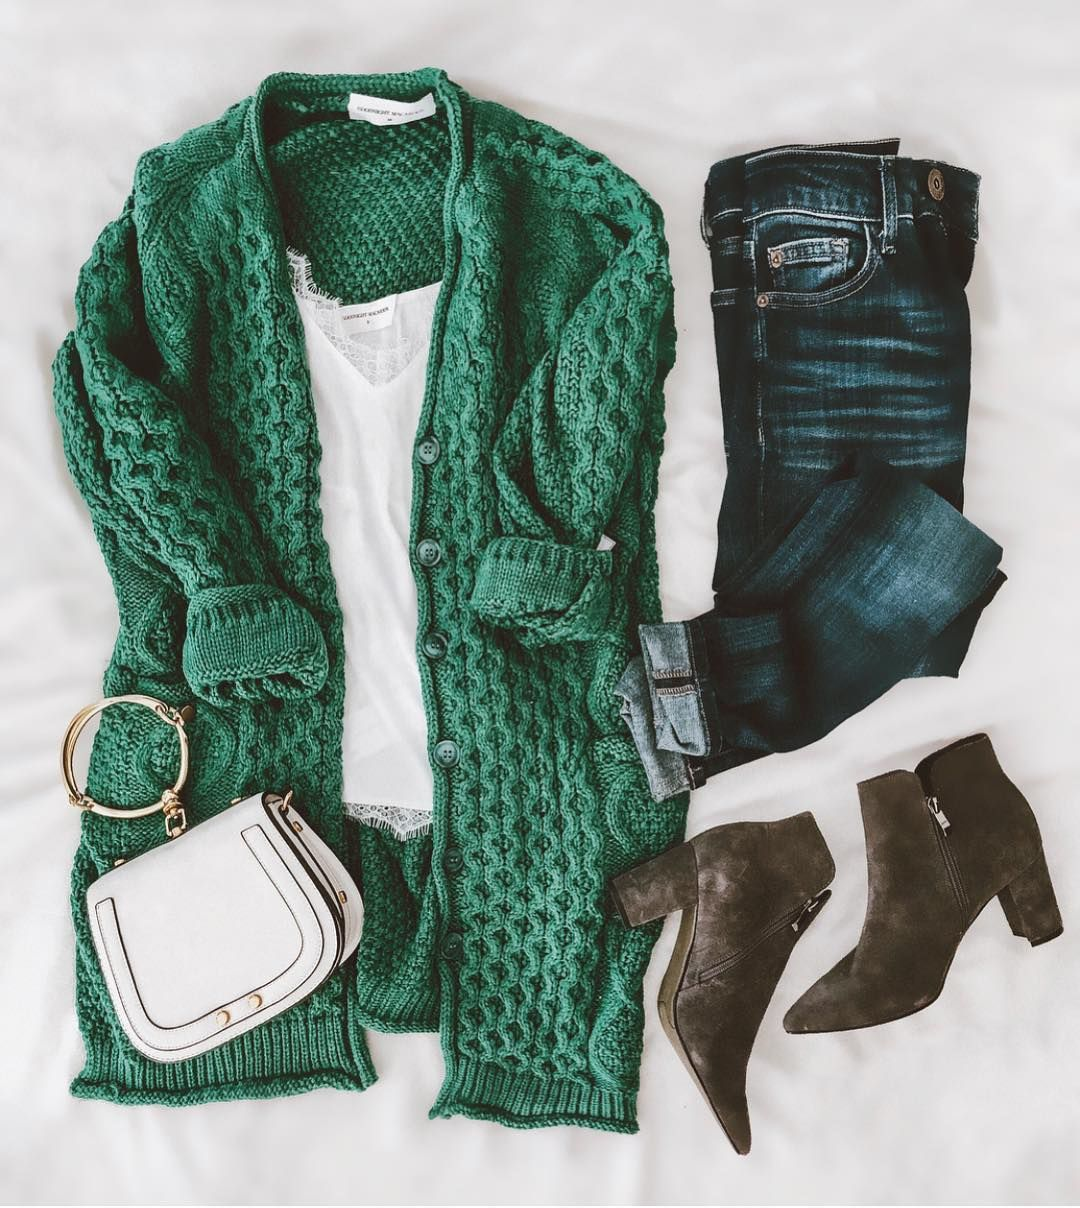 """Goodnight Macaroon Boutique on Instagram: """"One of our best-selling cardigans 'Bess' is now back in stock! Available in 5 colors! We especially love this emerald green one for #fall…"""""""